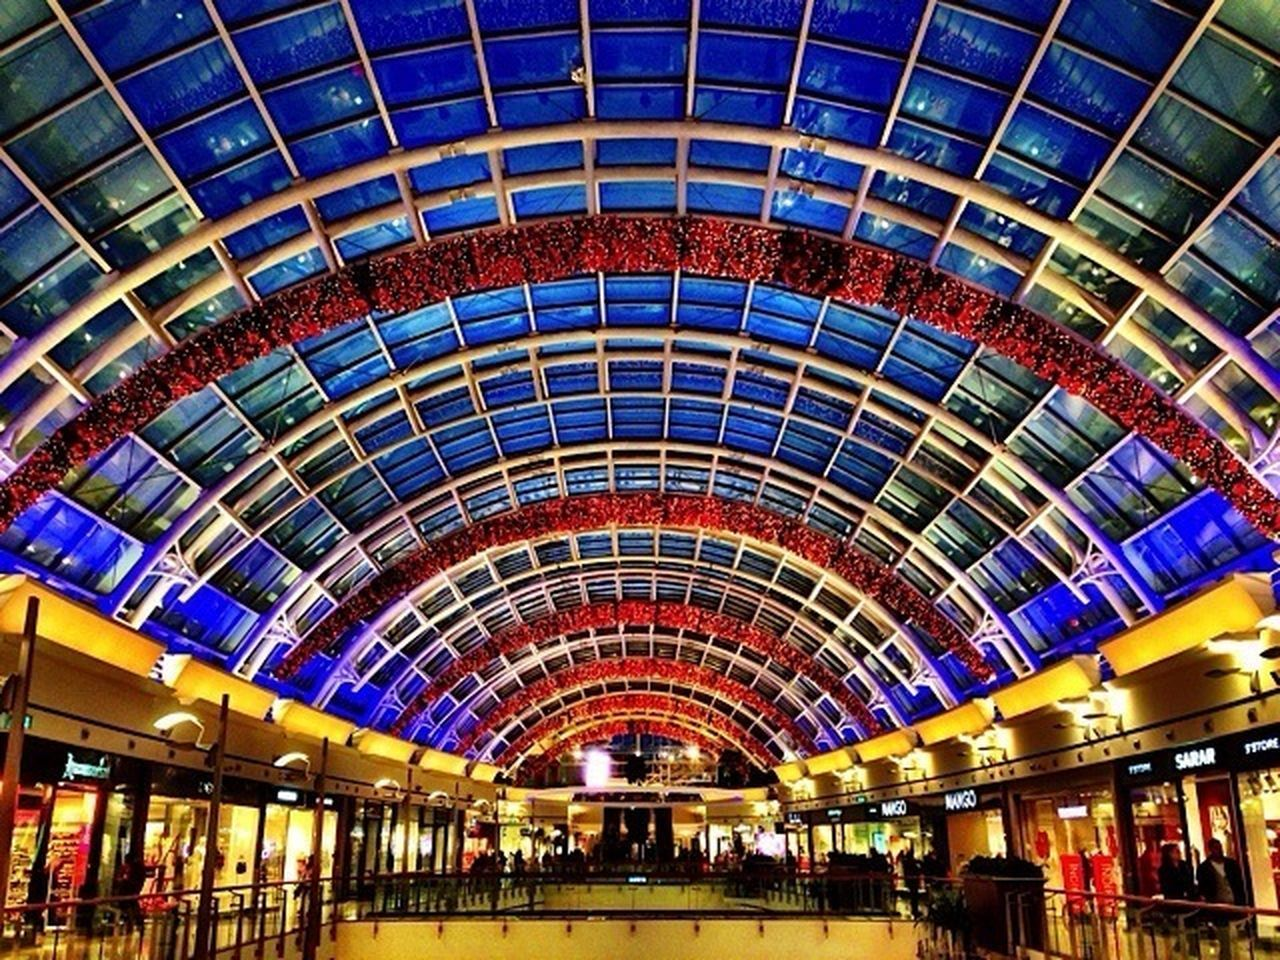 architecture, built structure, ceiling, modern, shopping mall, city, transportation building - type of building, arch, illuminated, city life, architectural feature, interior, travel destinations, building, architectural column, day, repetition, no people, diminishing perspective